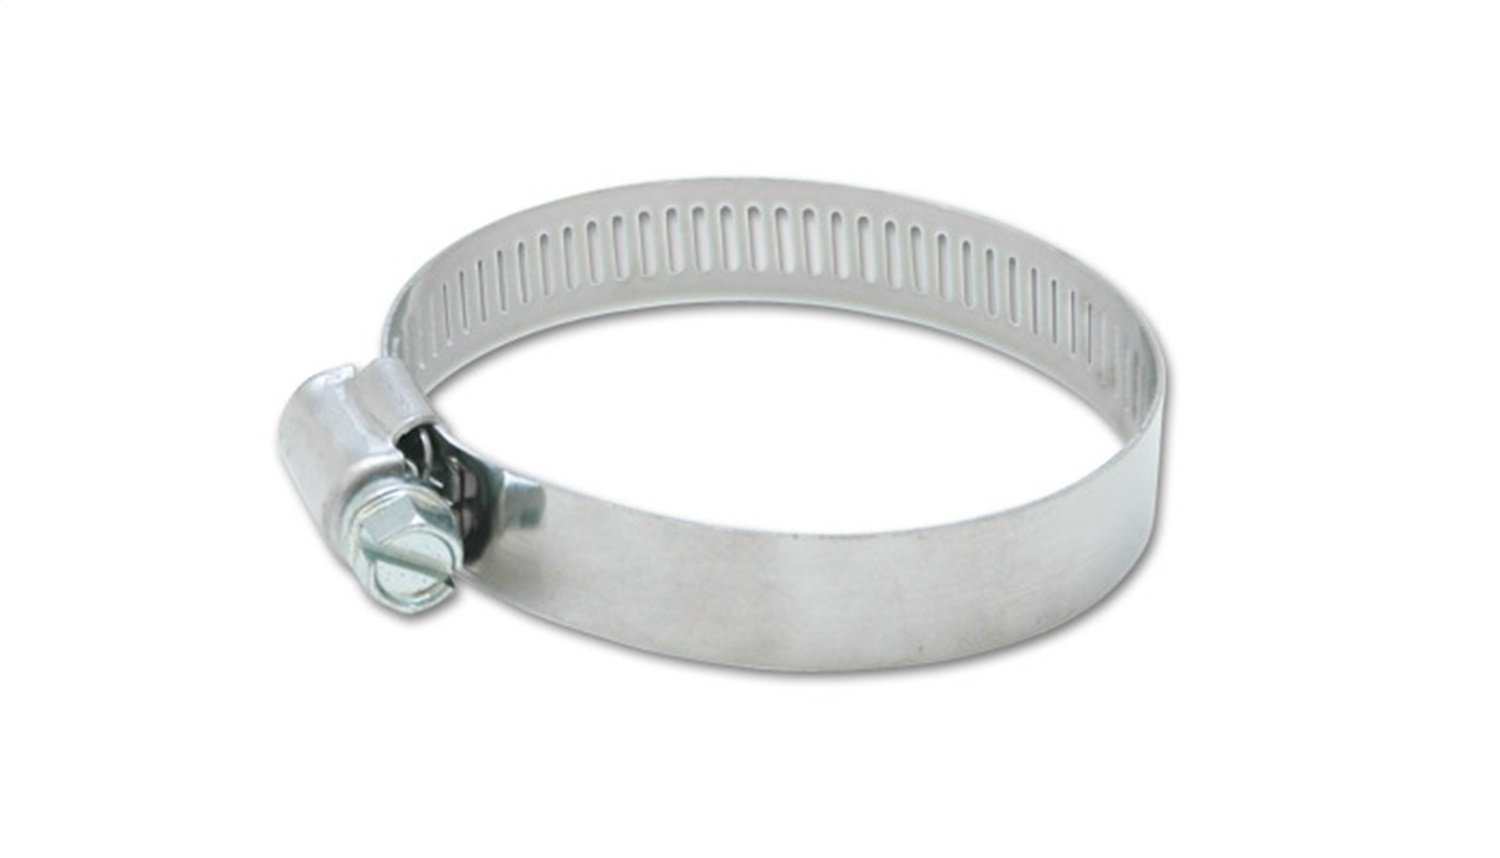 Vibrant Performance Pack of 10 Vibrant 12152 Stainless Steel Worm Gear Clamp,